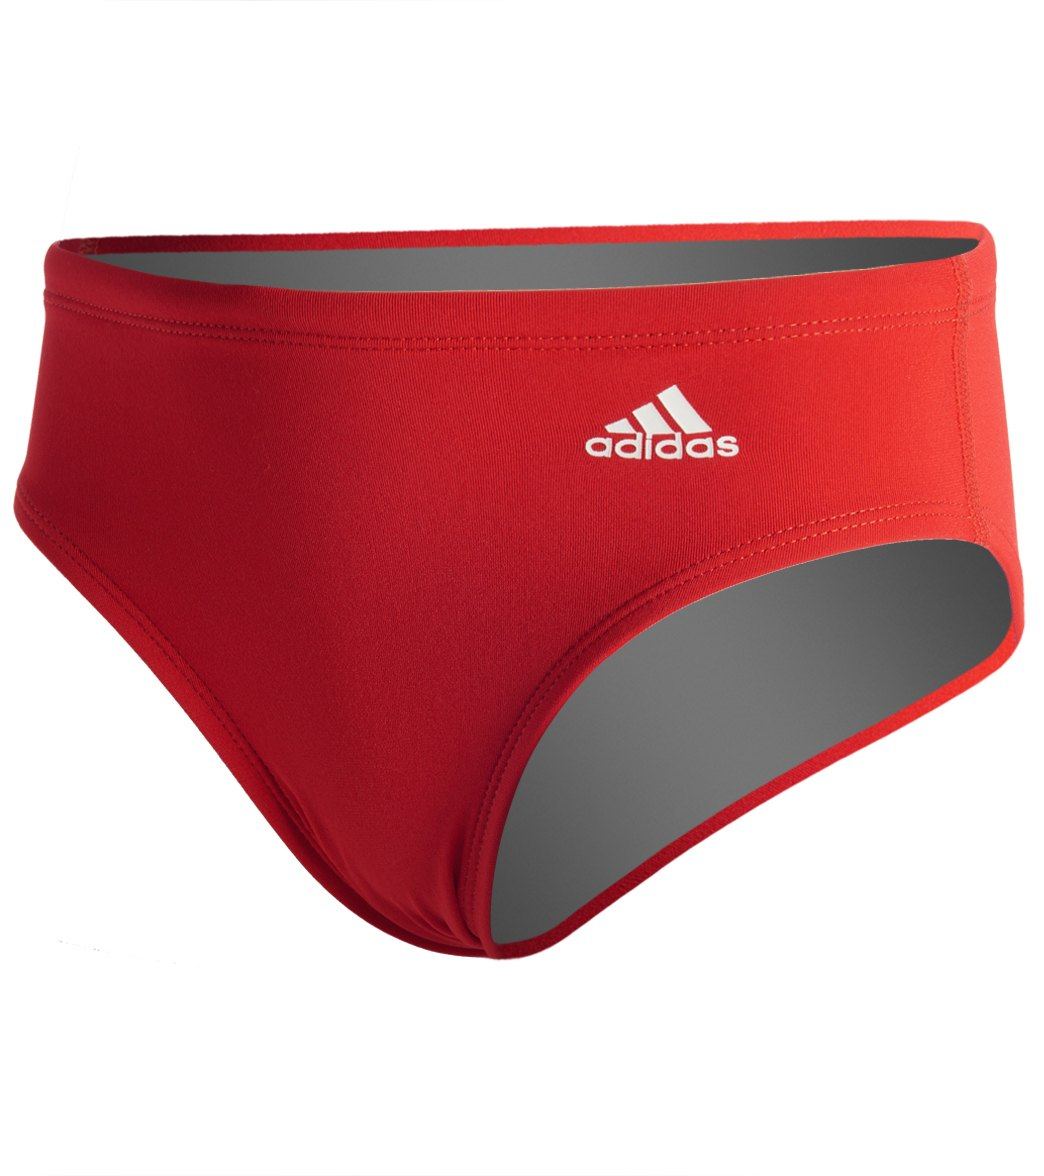 2ddc1731f2698 Adidas Men's Infinitex + Solid Brief Swimsuit at SwimOutlet.com